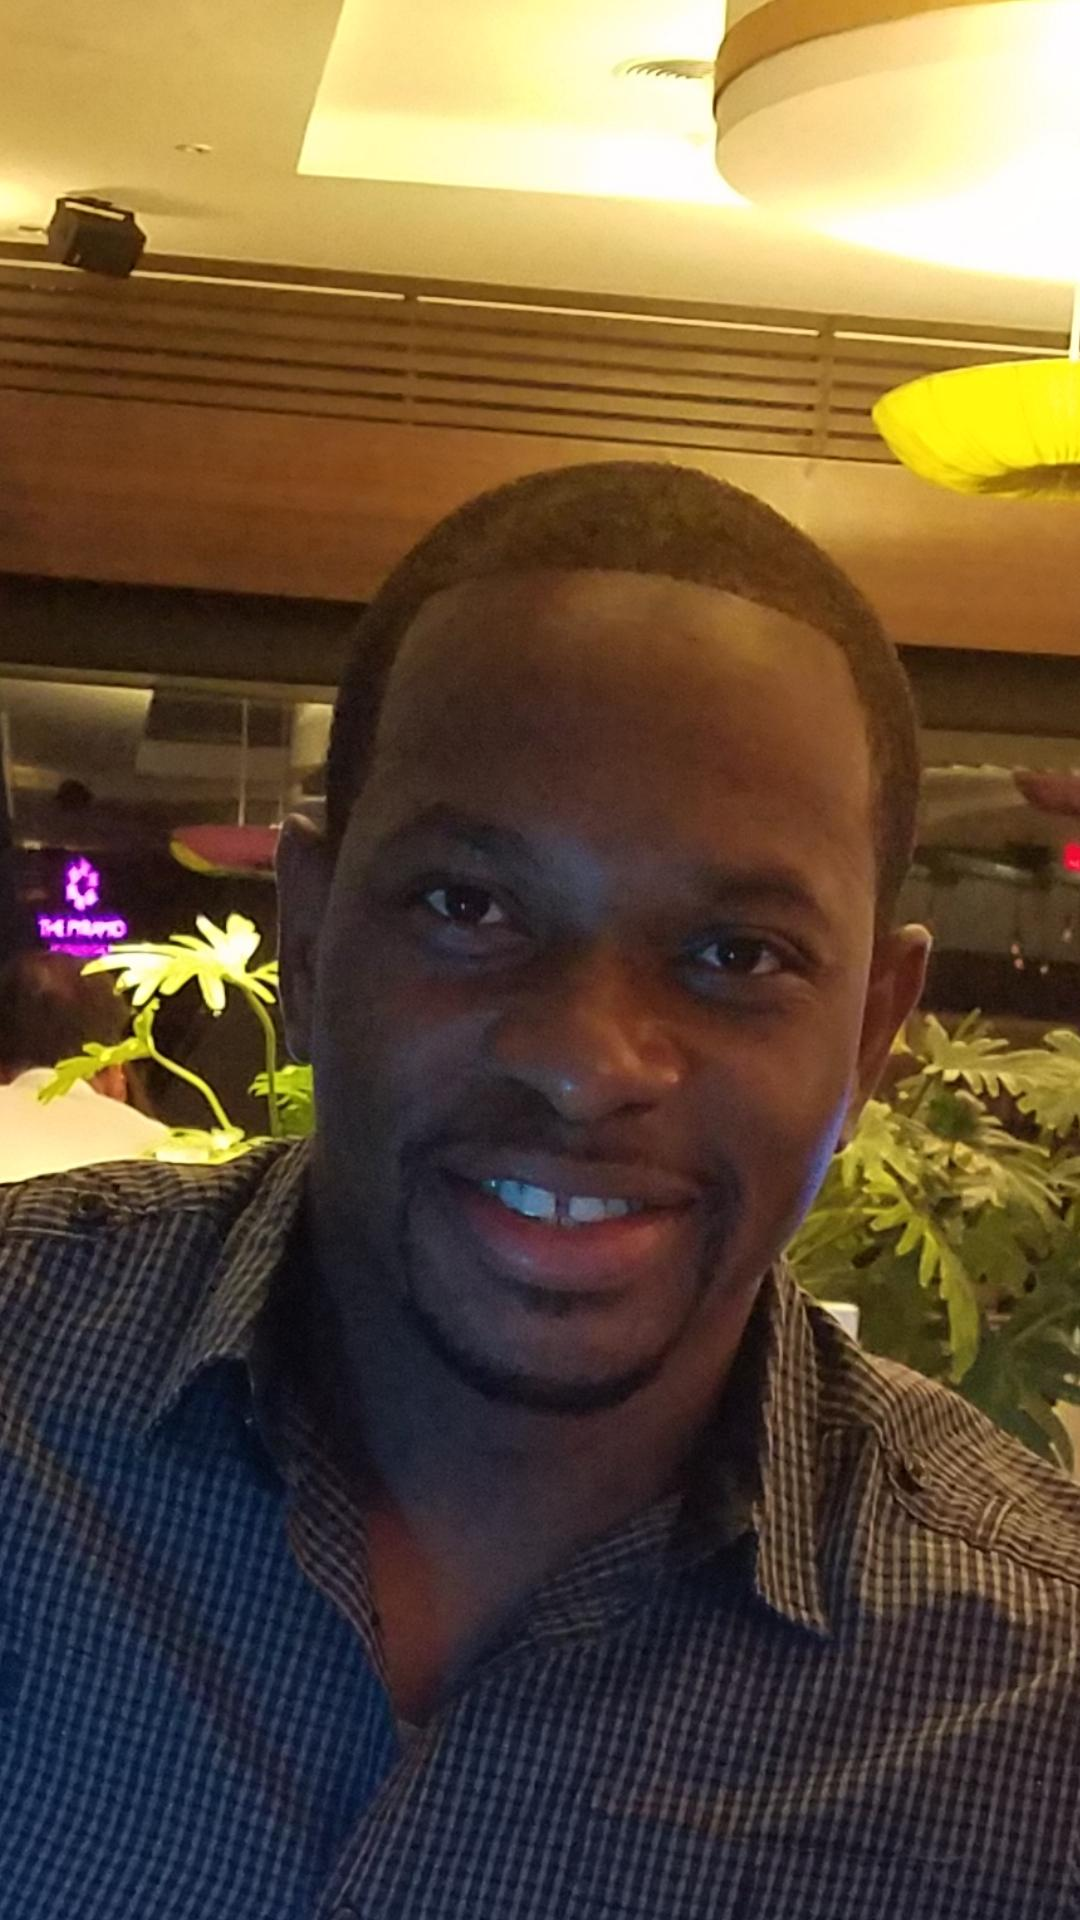 Ayoola Abudu - I joined Pursuit to acquire proper knowledge and skills to obtain a position as a software engineer.